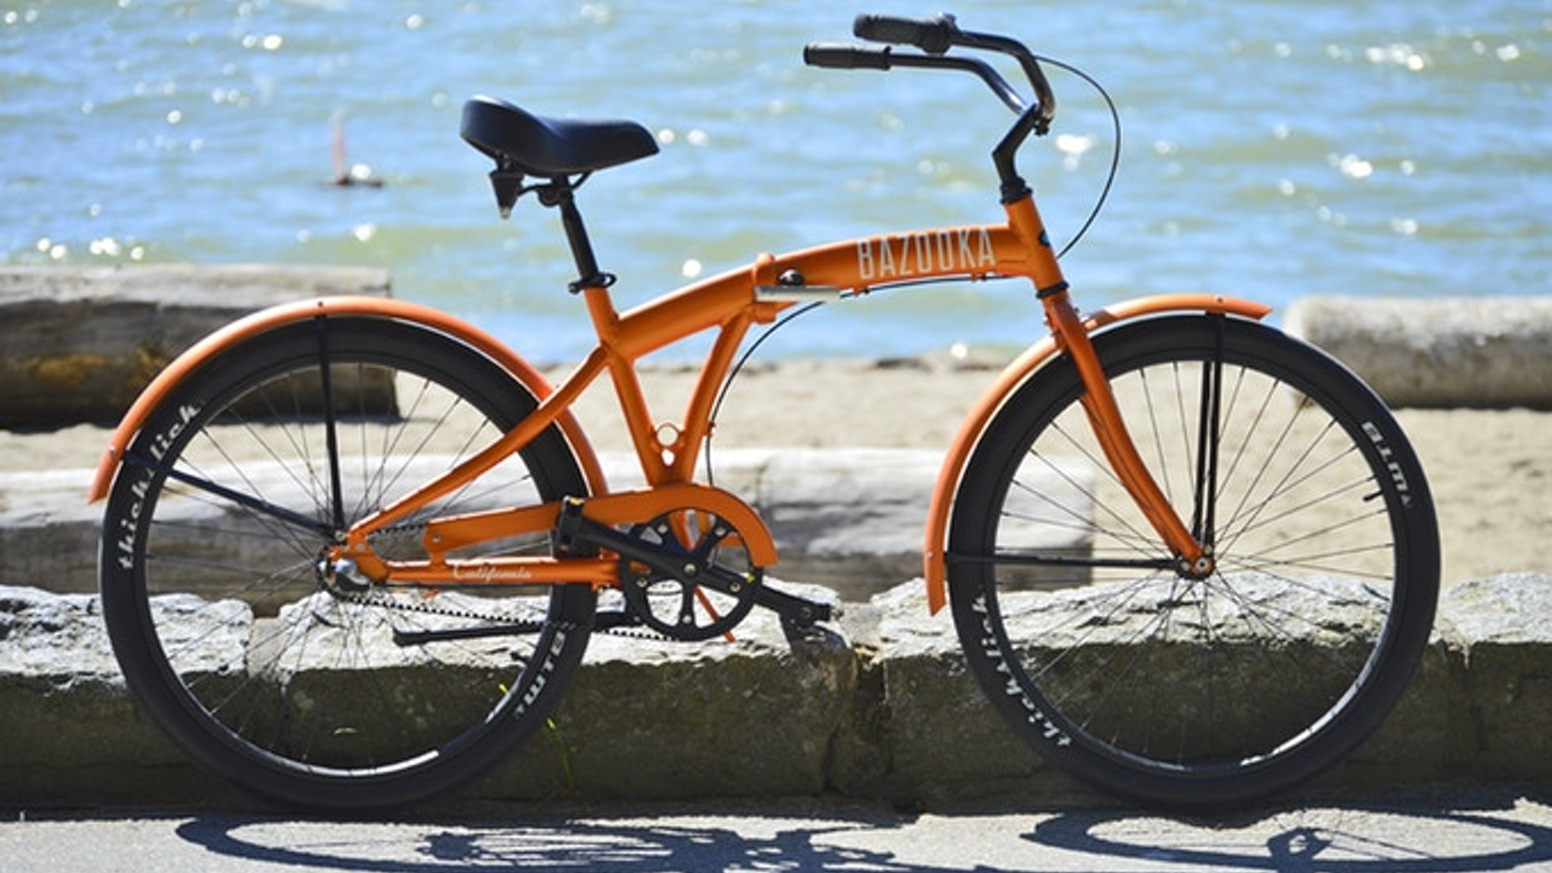 The Only Full Size Light Folding Beach Cruiser Bike With Carbon Belt Drive Compact When